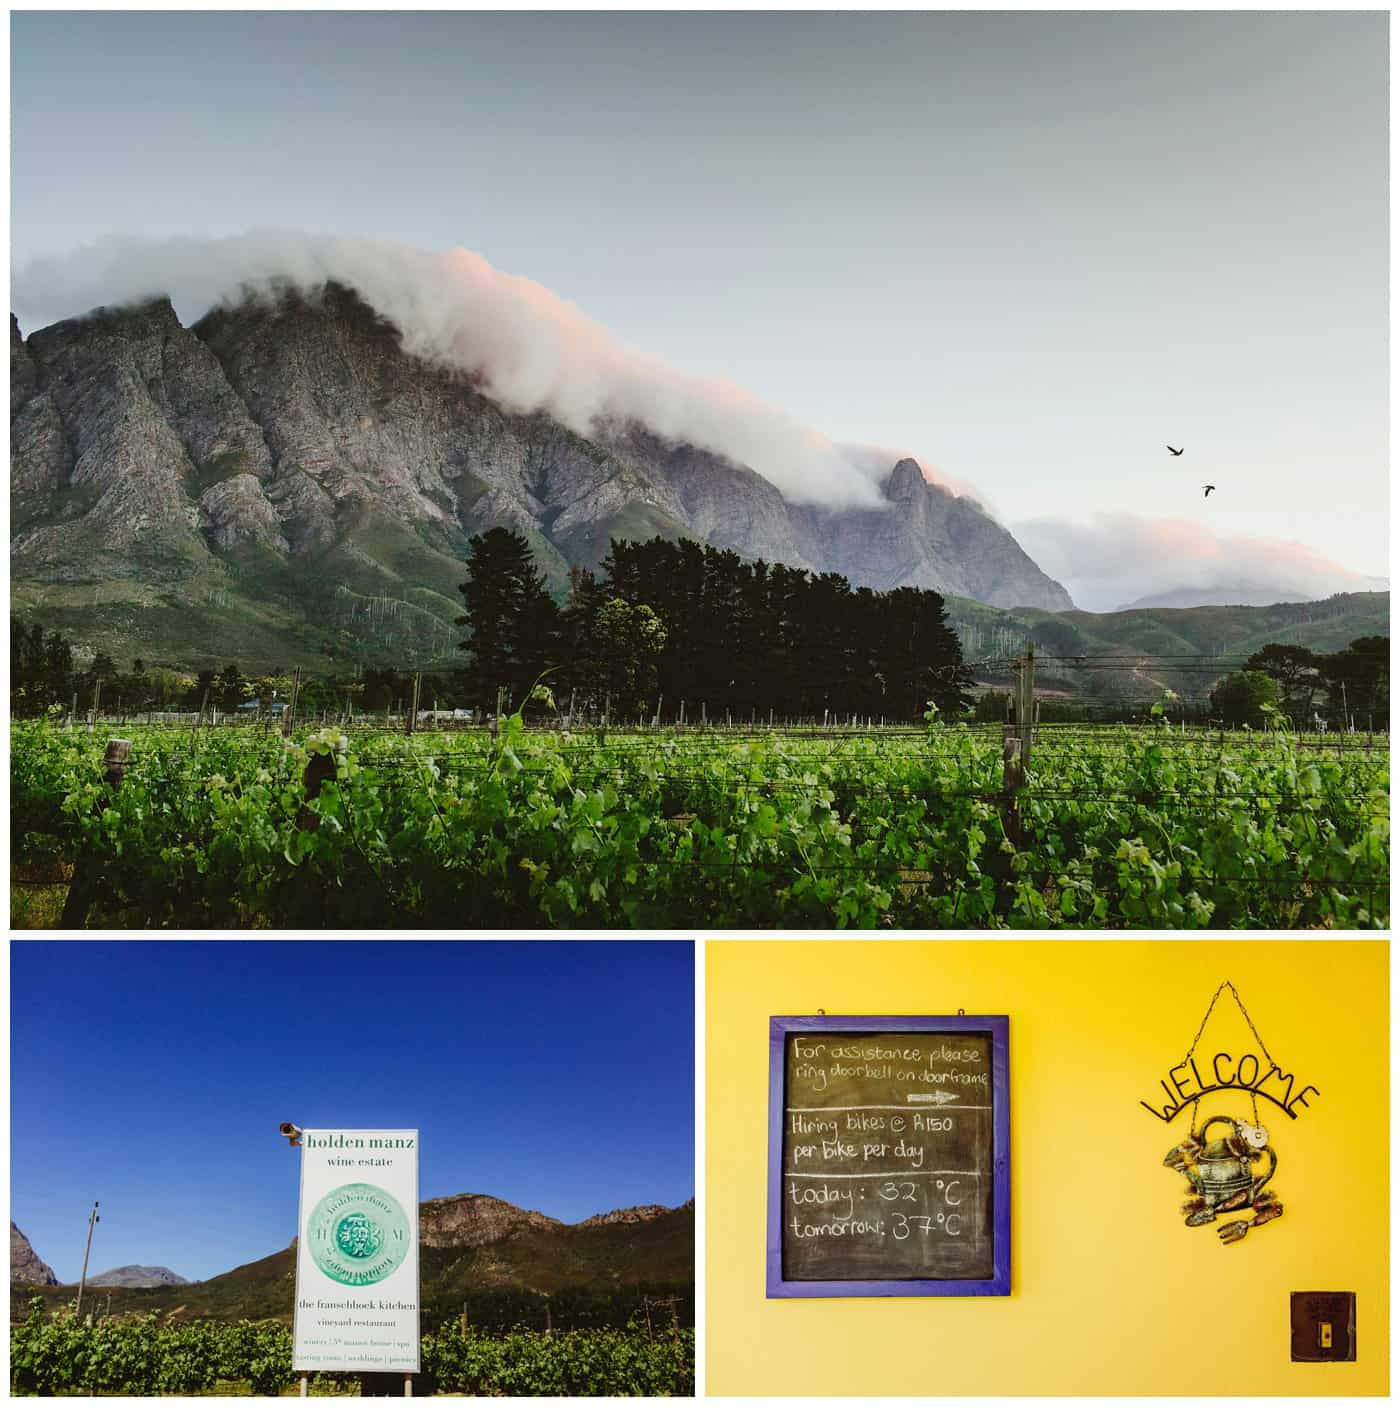 Franschhoek vineyards south africa